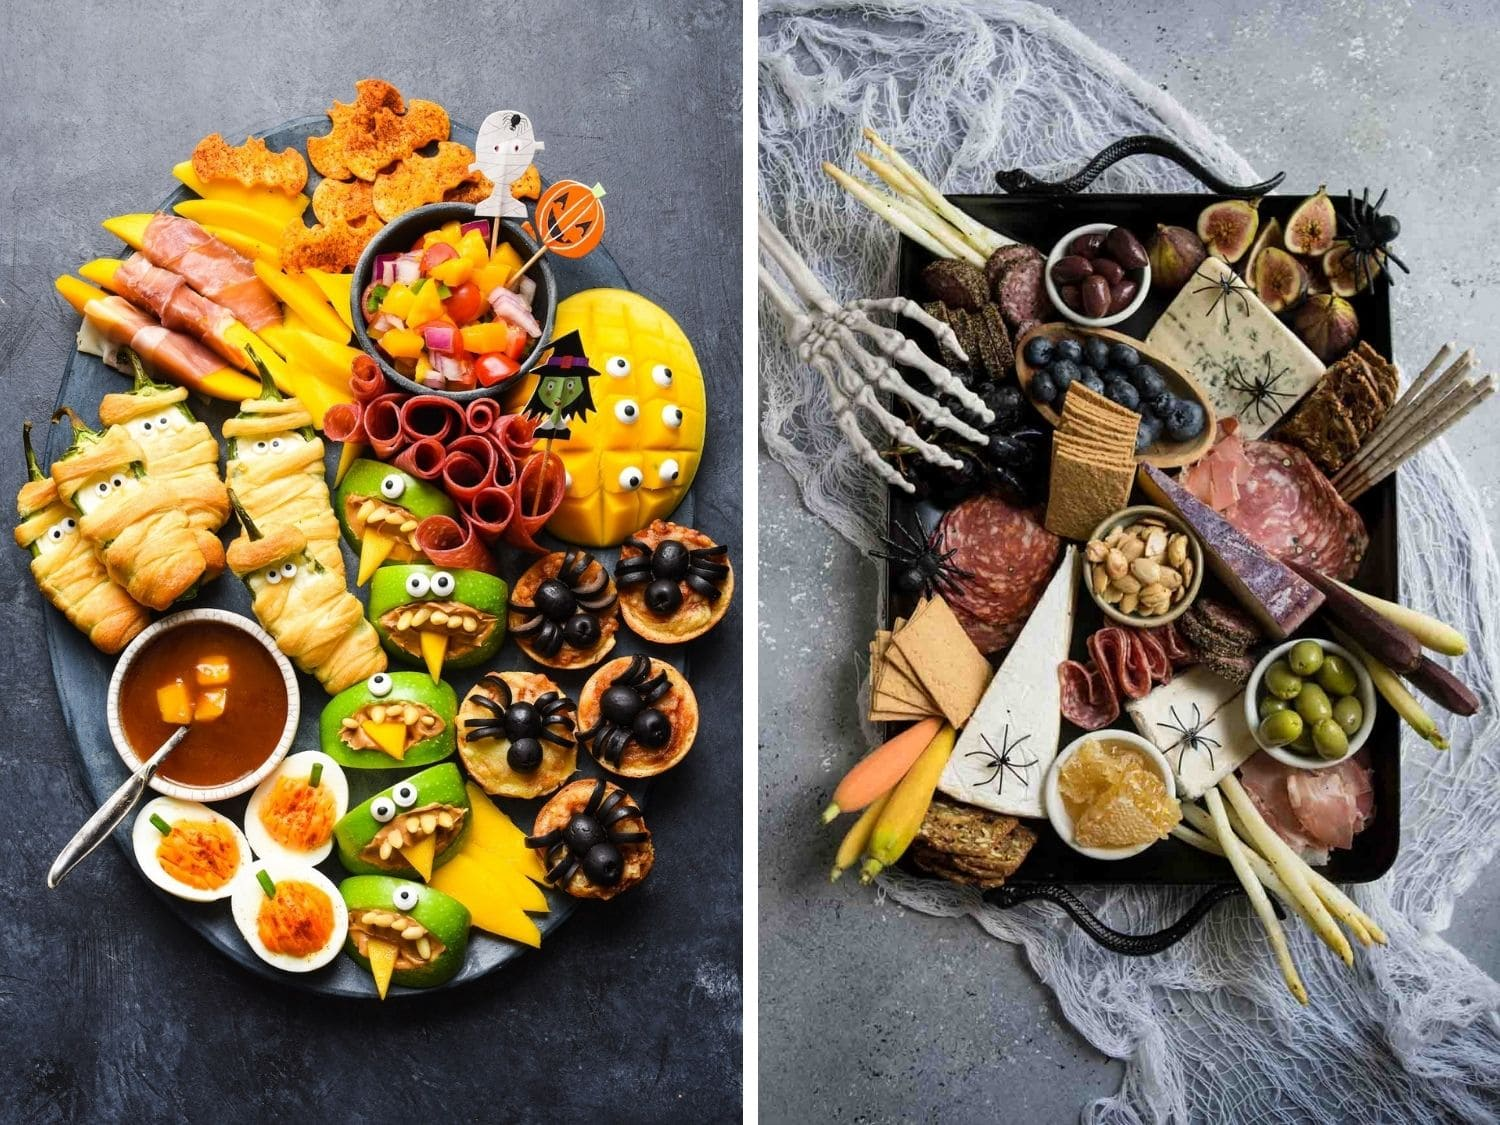 Photo collage of a Halloween themed snack board and charcuterie board.